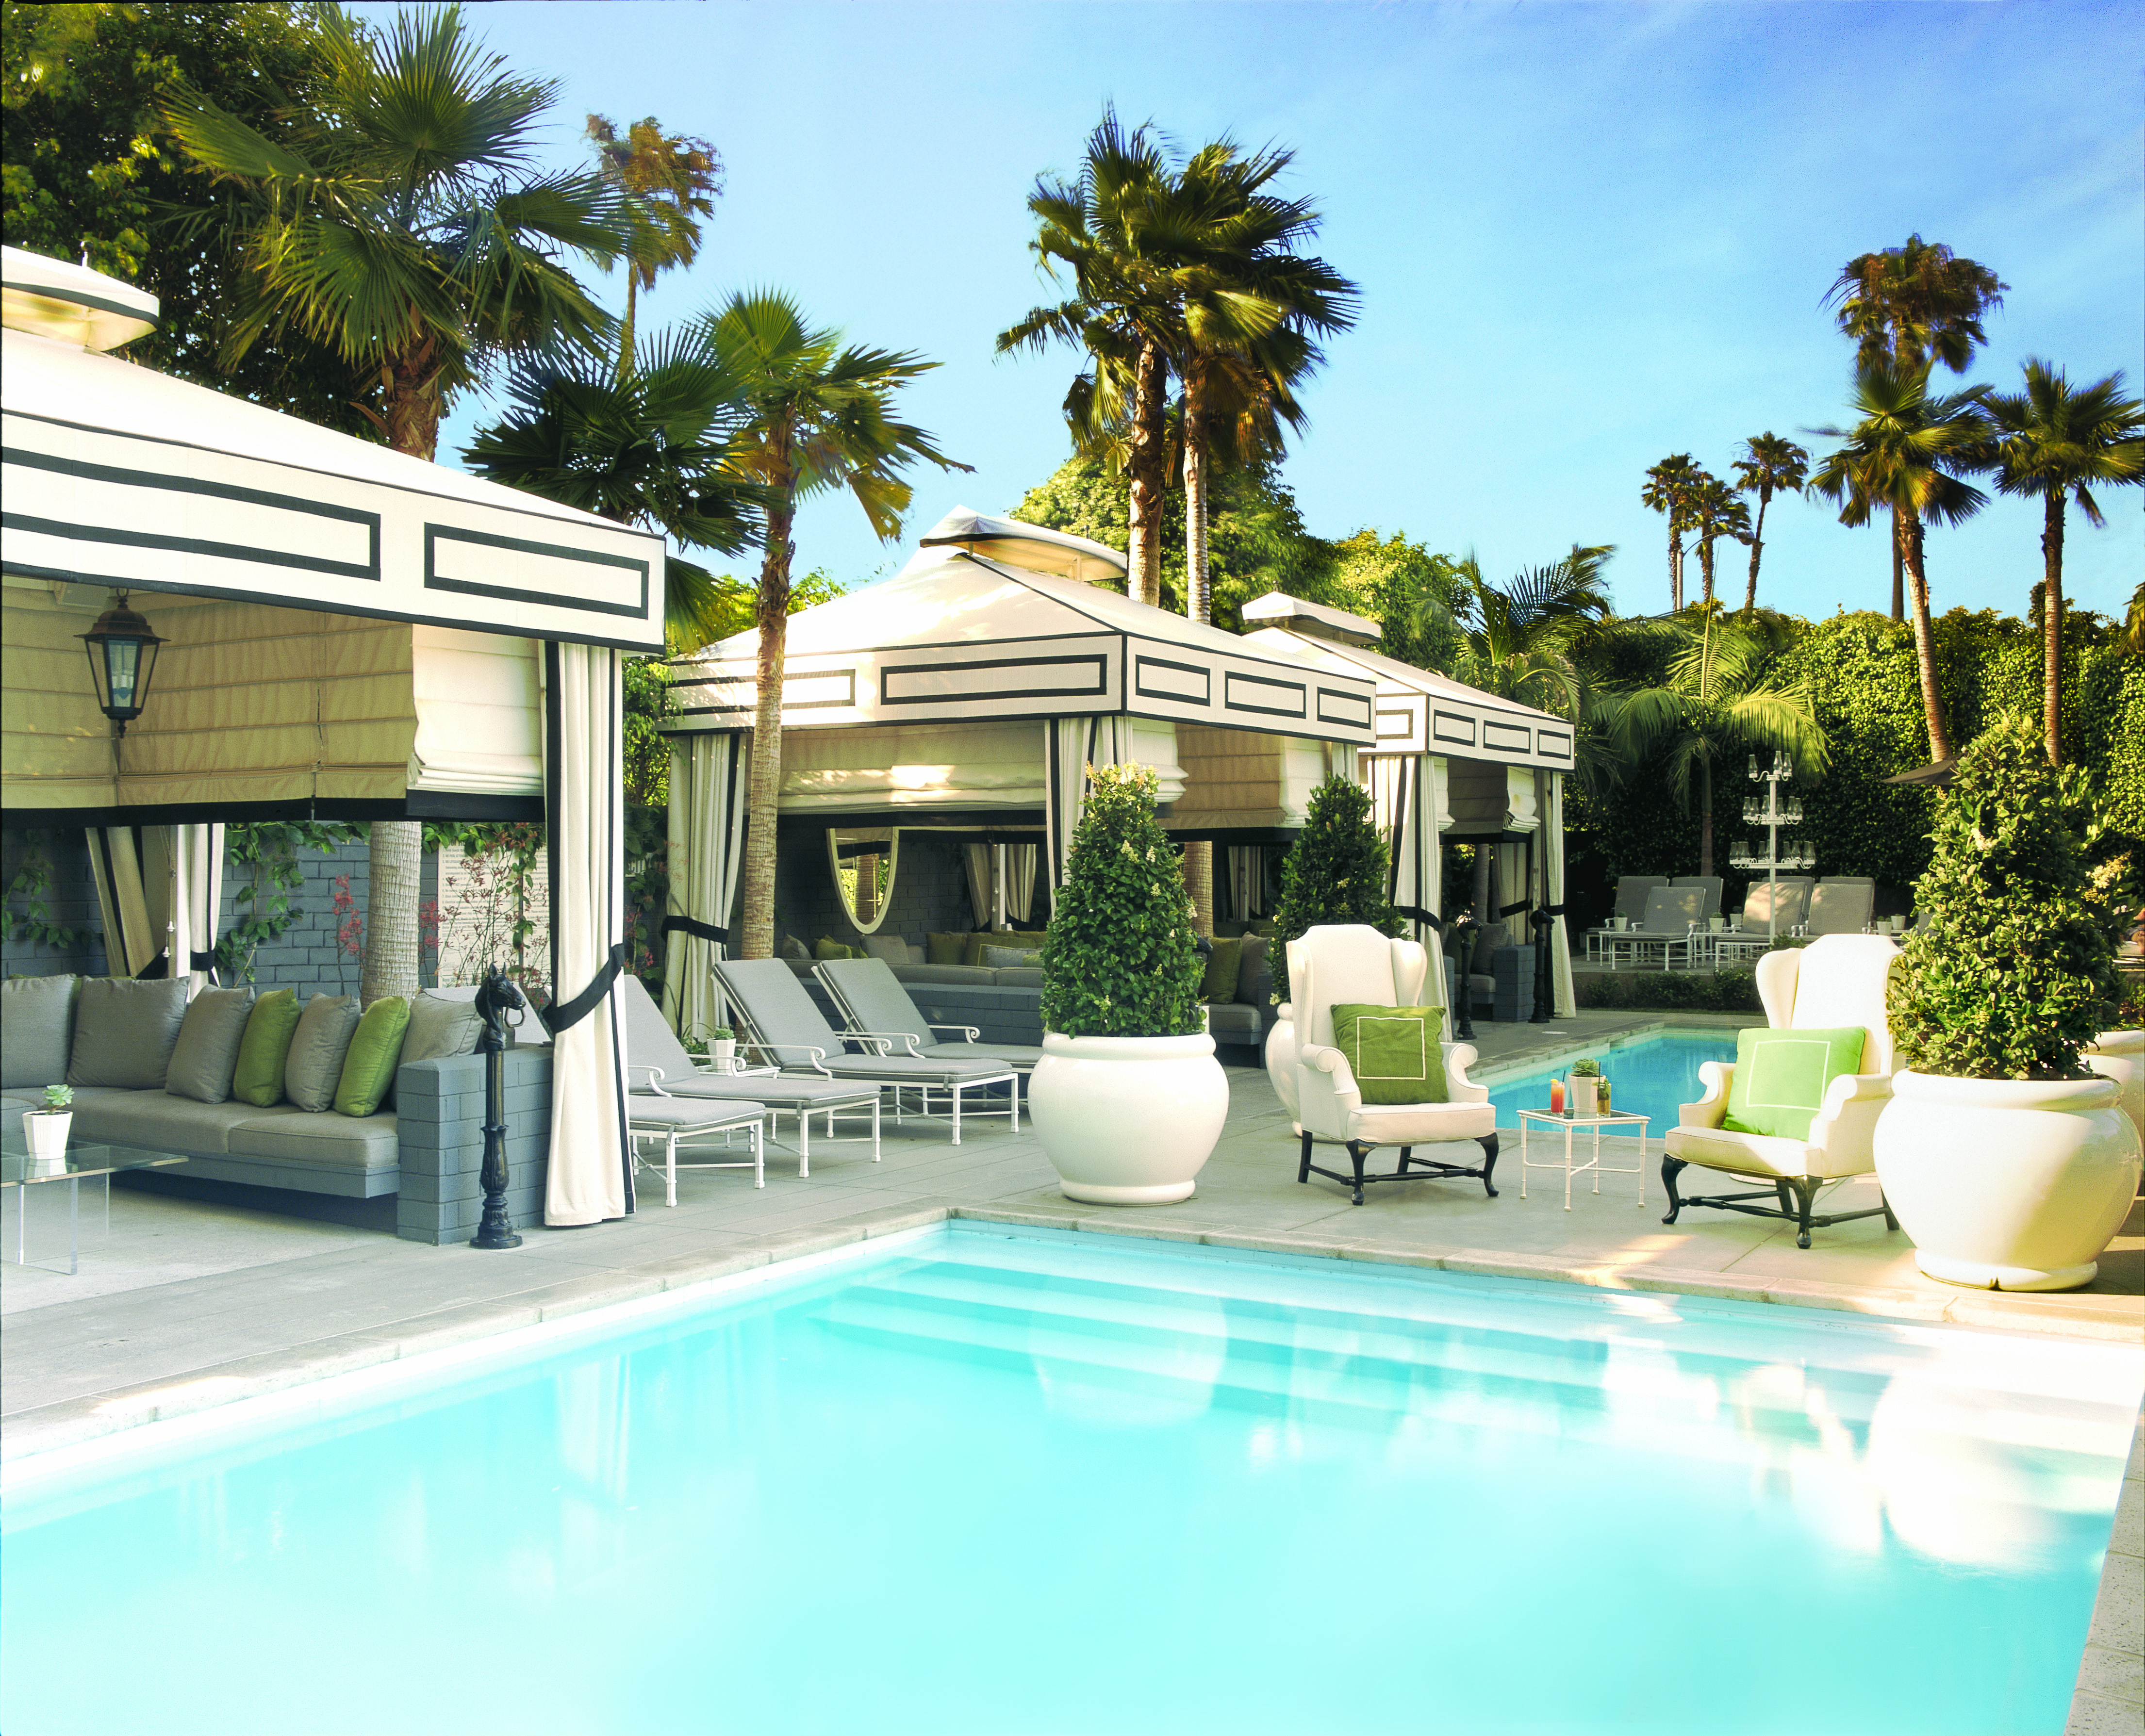 Five of the best swimming pools magellan pr - Best hotel swimming pools in california ...